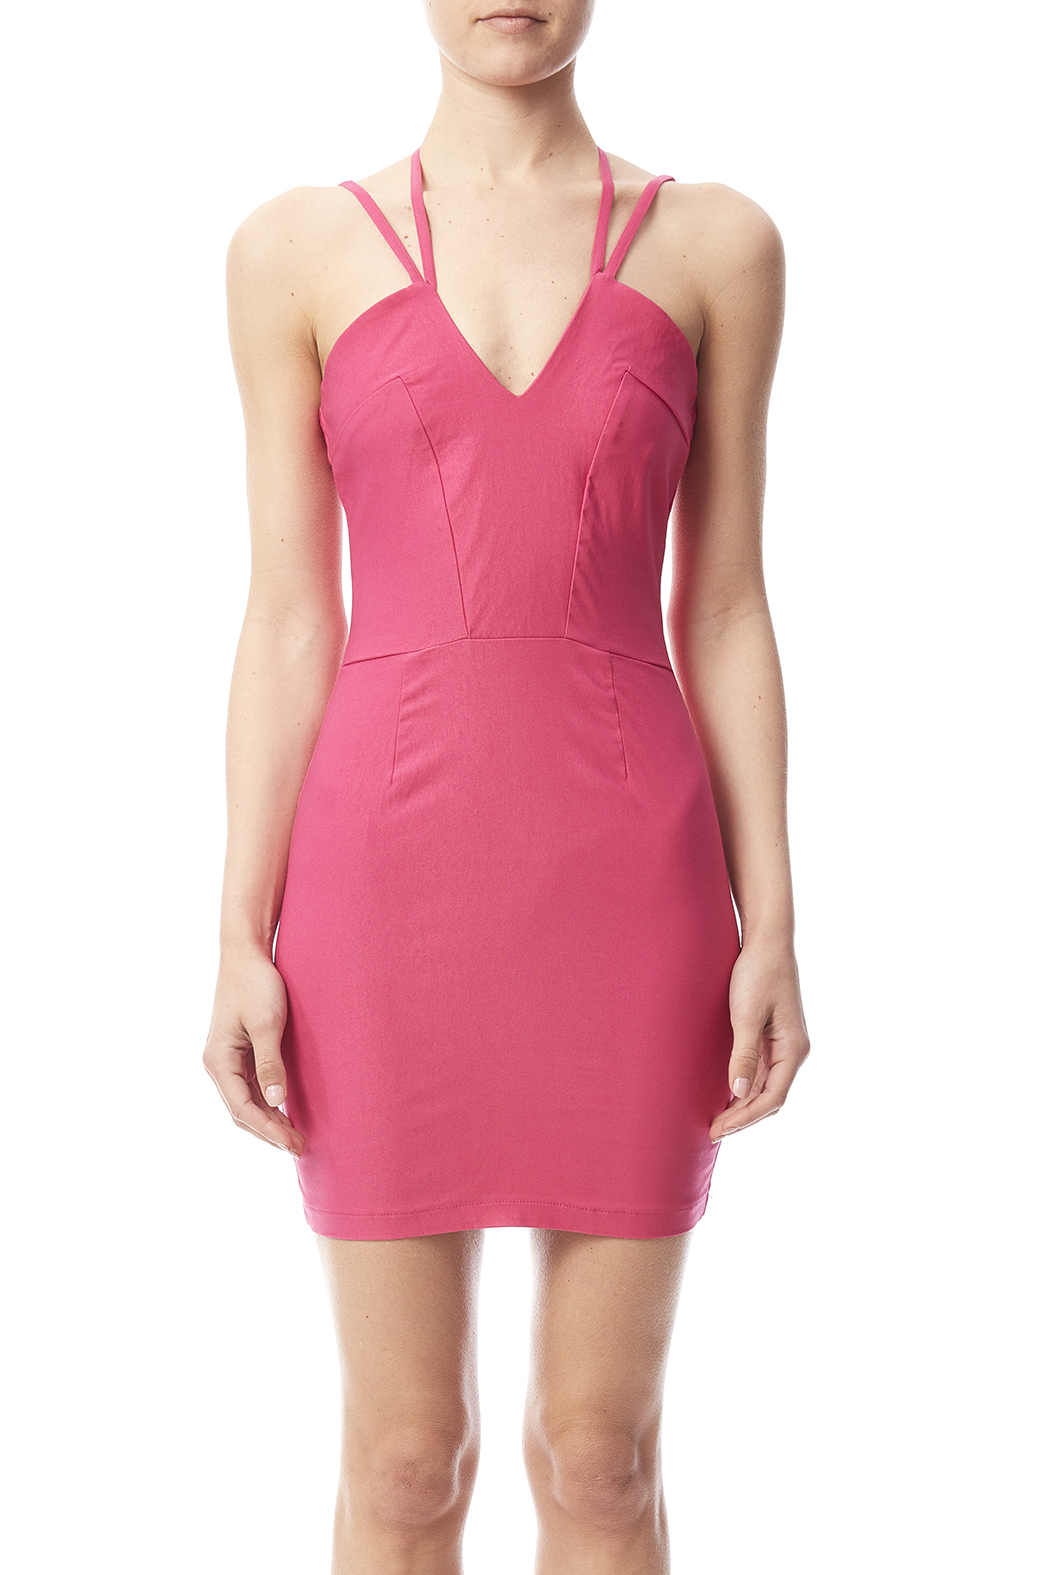 W by Wenjie Pink Cross-Back Dress - Side Cropped Image